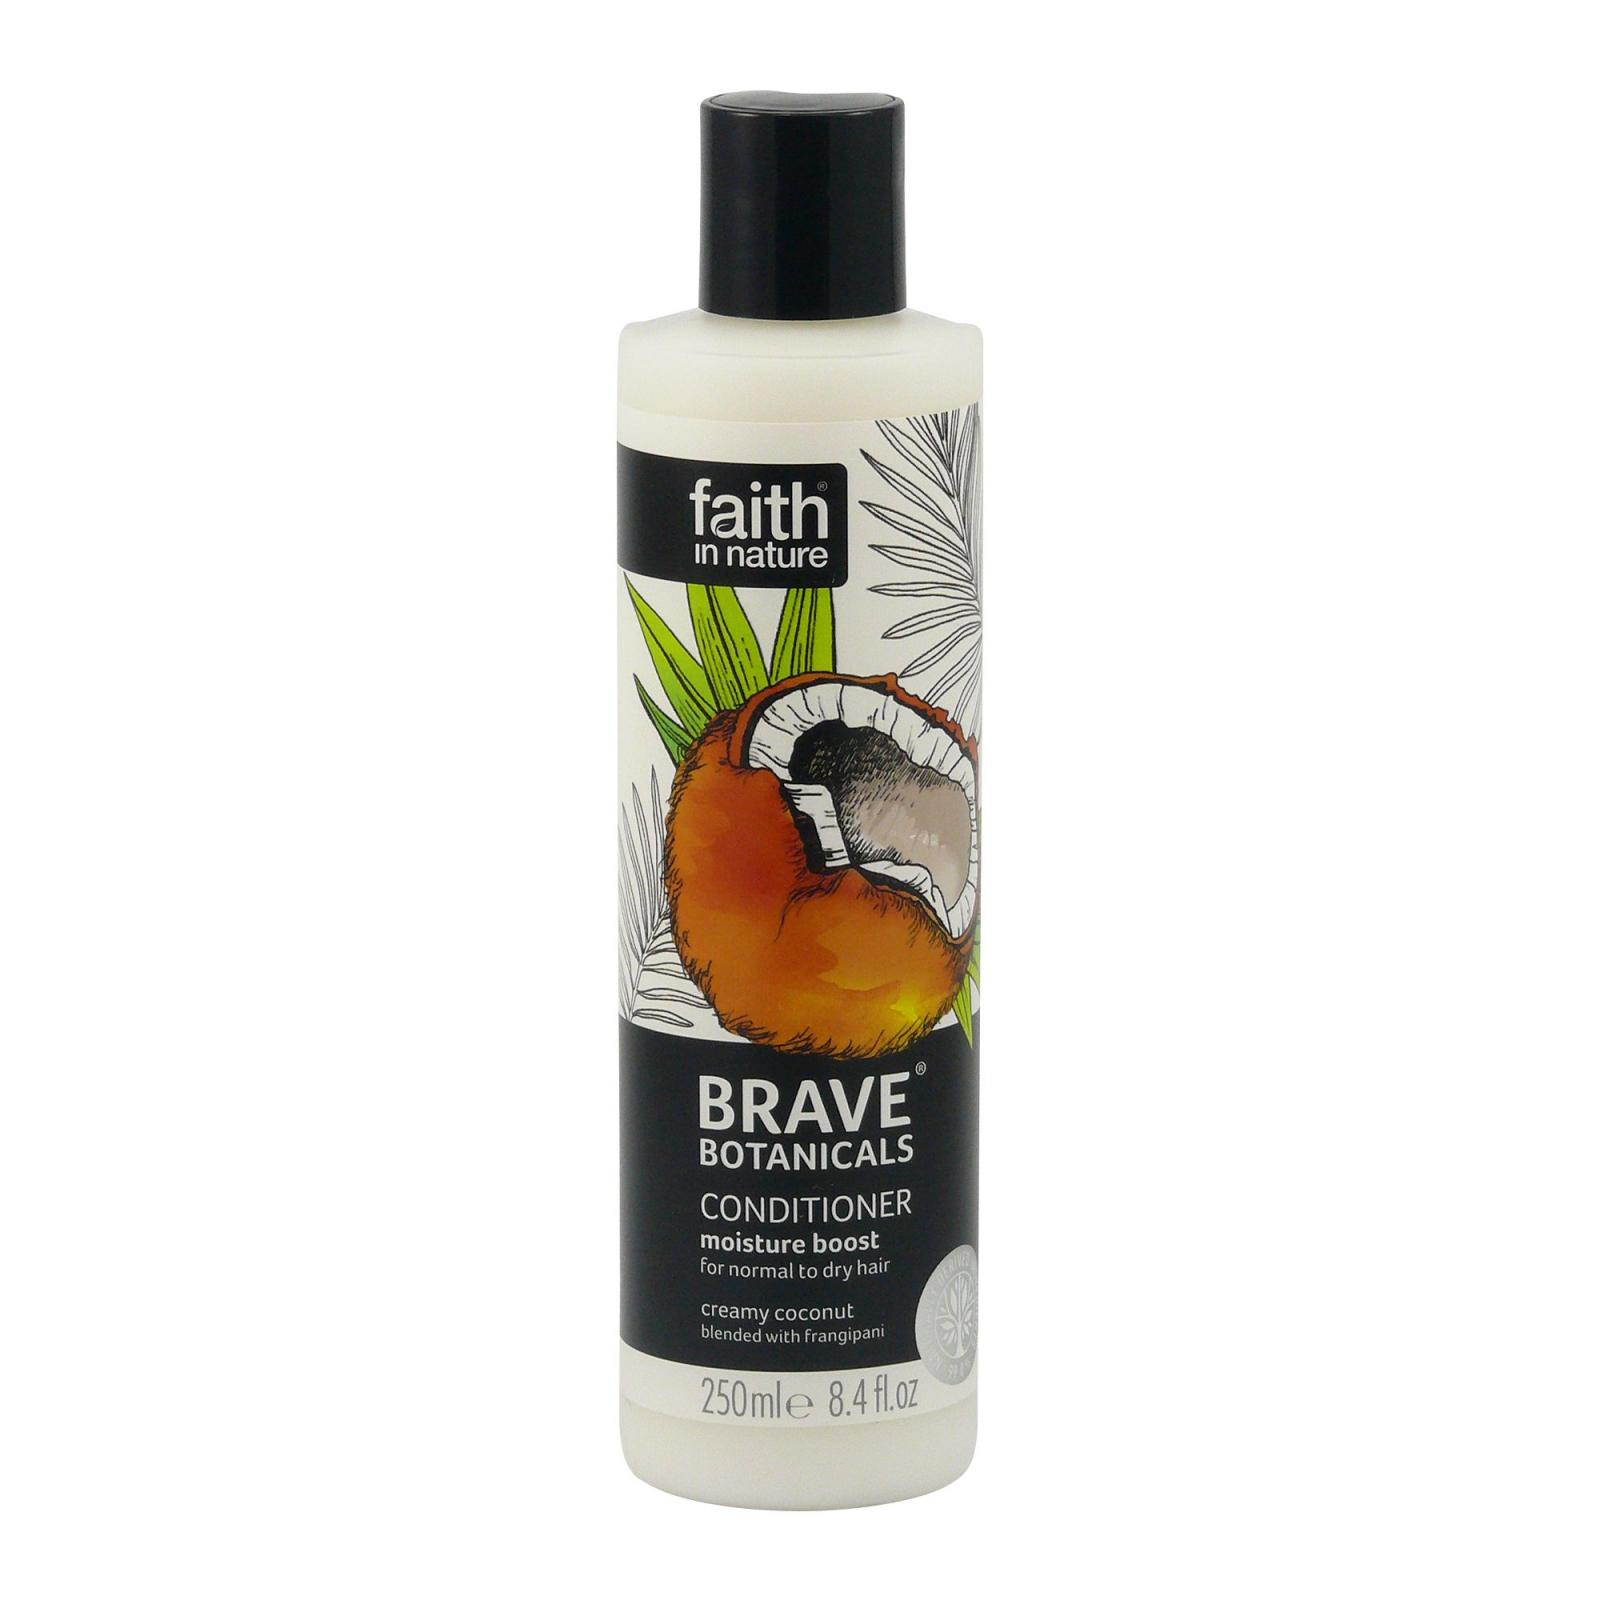 Faith in Nature Kondicionér kokos & plumérie, Brave 250 ml